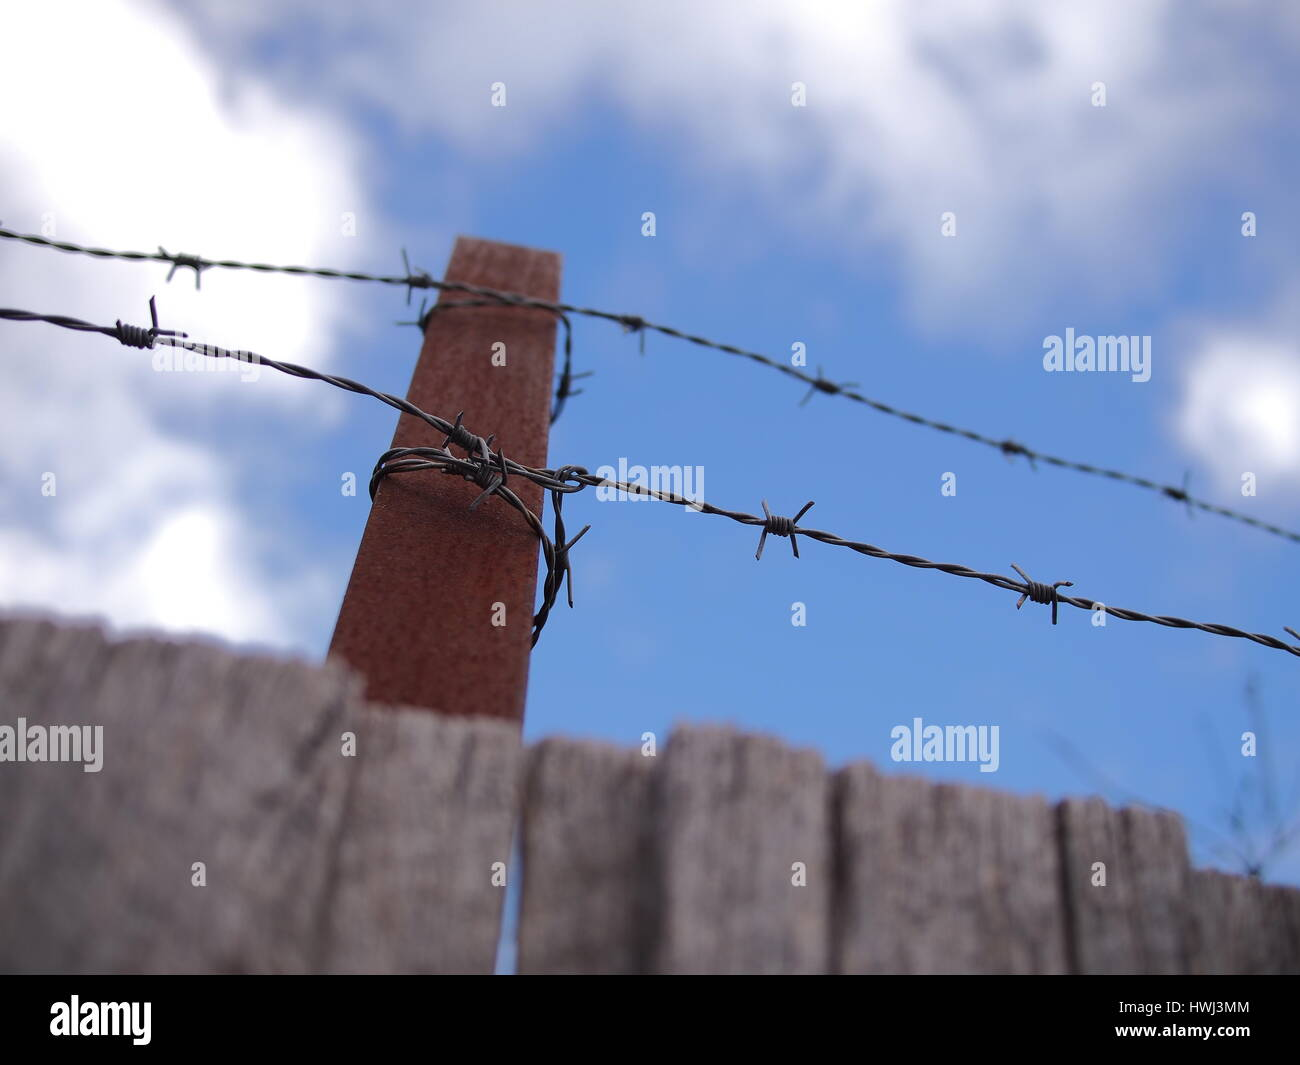 Steel barb wire on a fence under cloudy sky, Australia 2016 - Stock Image